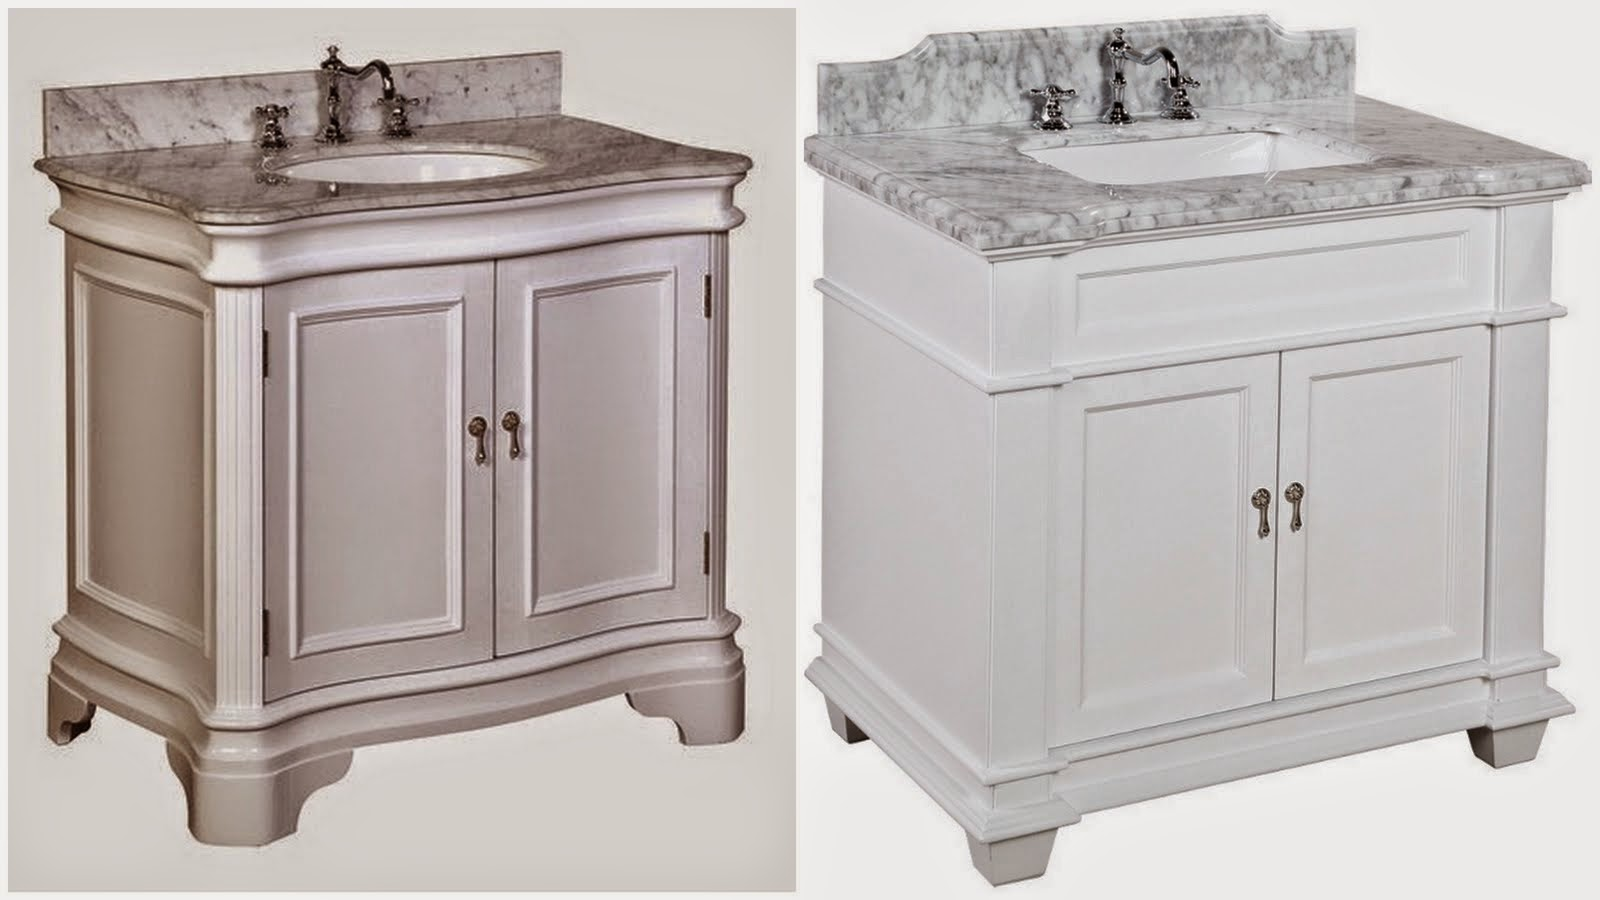 Our Classic, White Bathroom Vanity Is On The Way! (and A Surprise Discount)